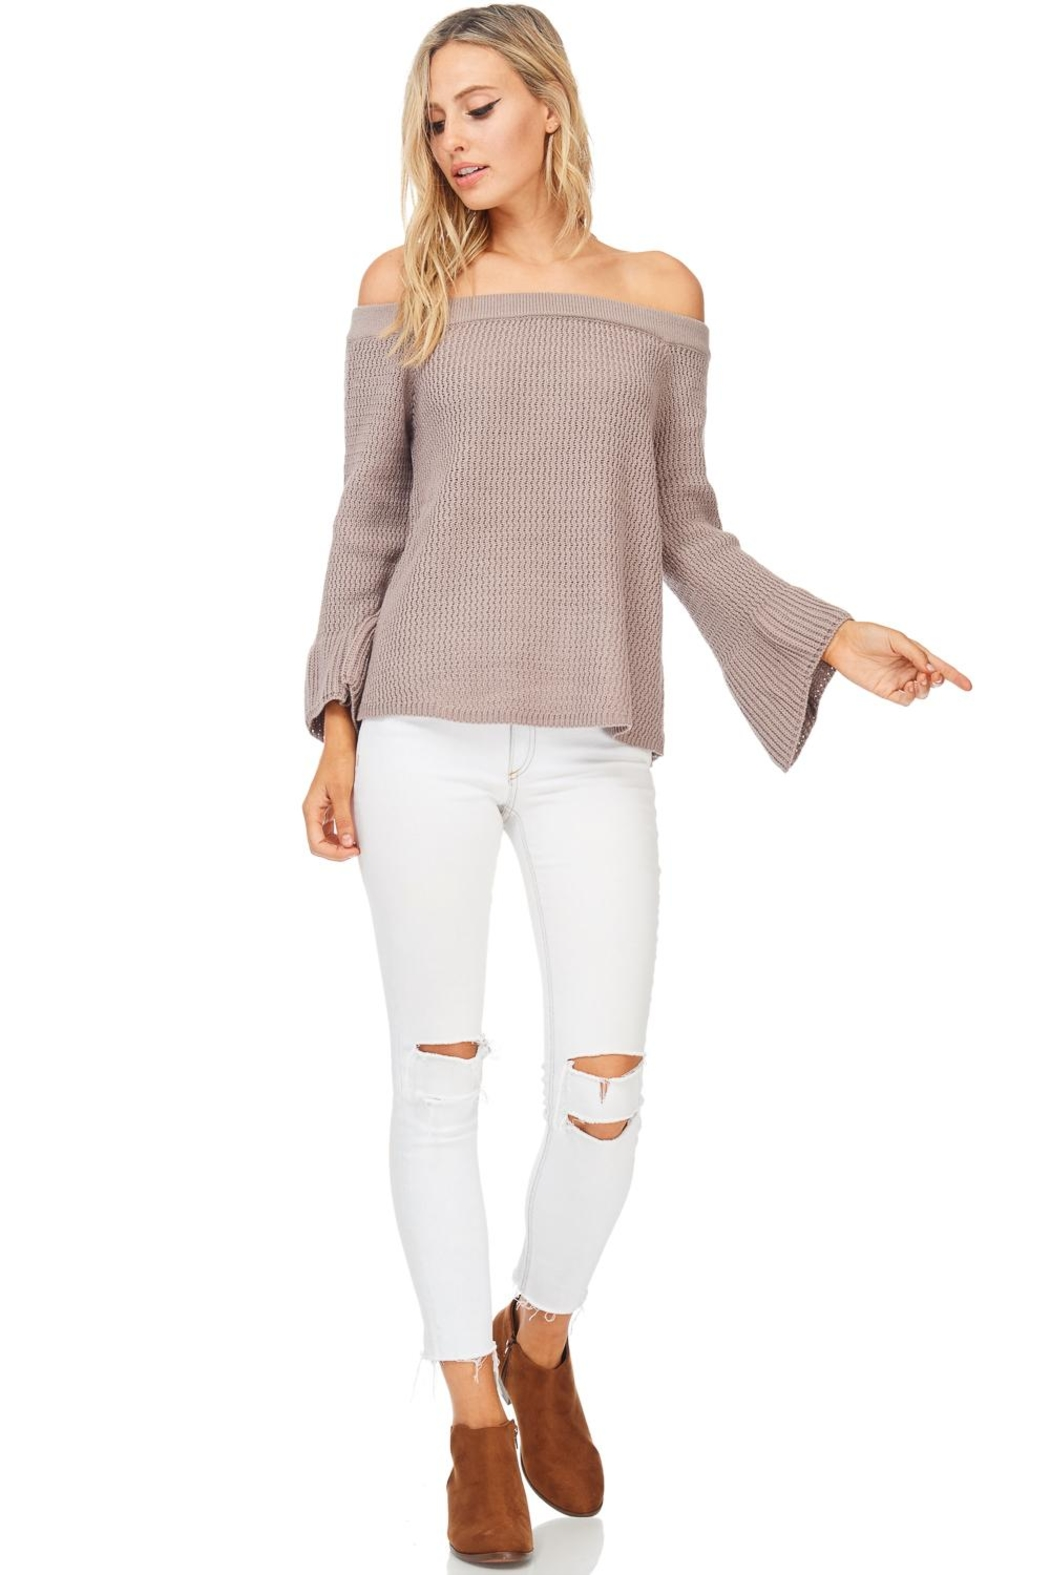 LoveRiche Taupe Off Shoulder Sweater from Cleveland by Apricot ...